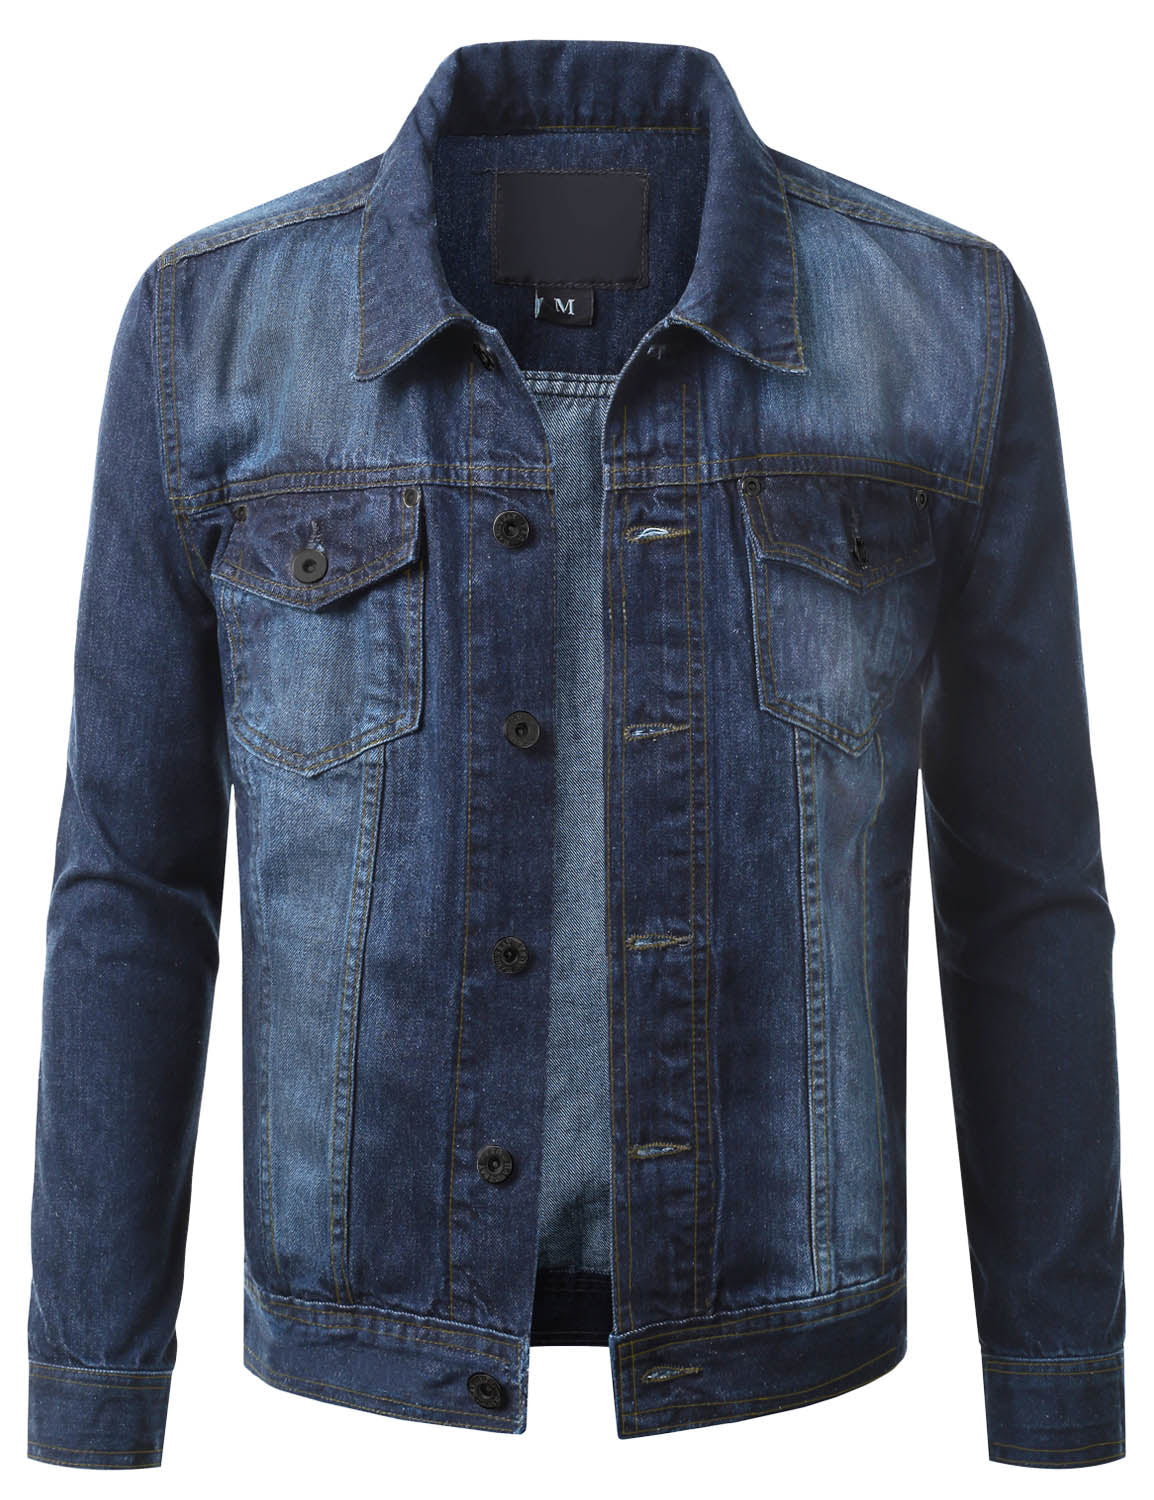 MSB Button Down Denim Trucker Jacket - URBANCREWS